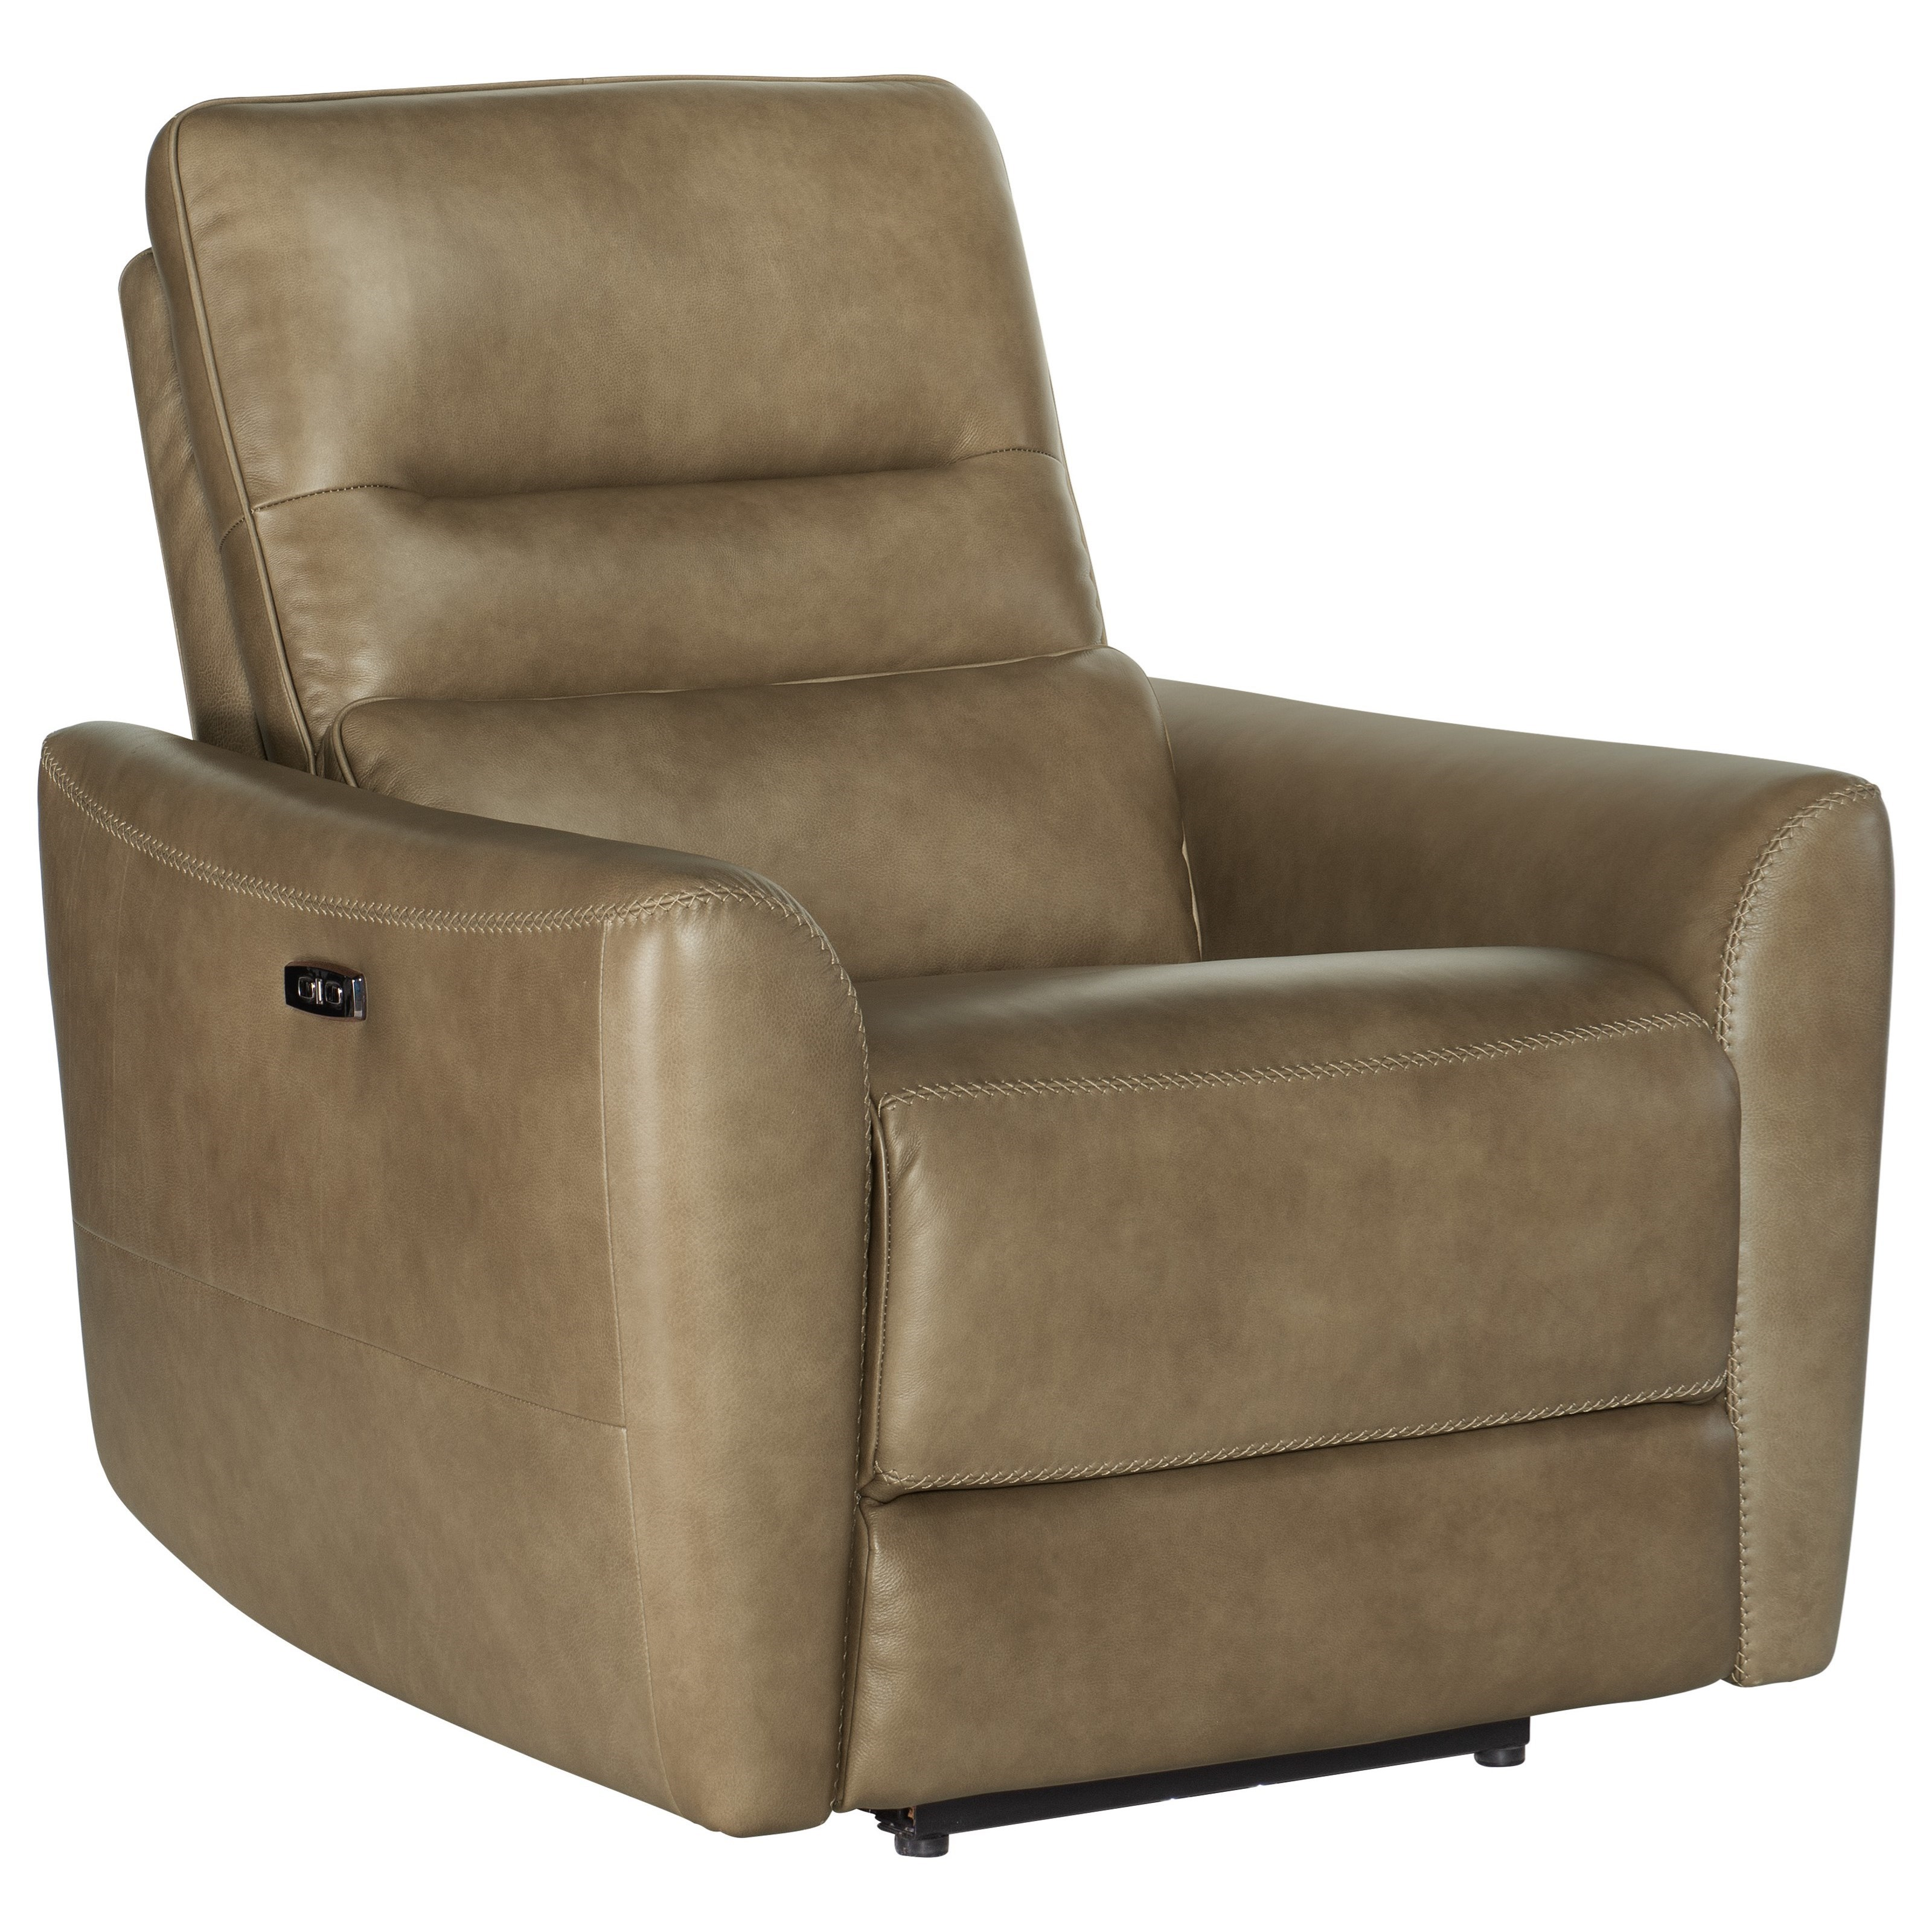 Reclining Chairs Zero Gravity Power Recliner w/ Power HR by Hooker Furniture at Miller Waldrop Furniture and Decor